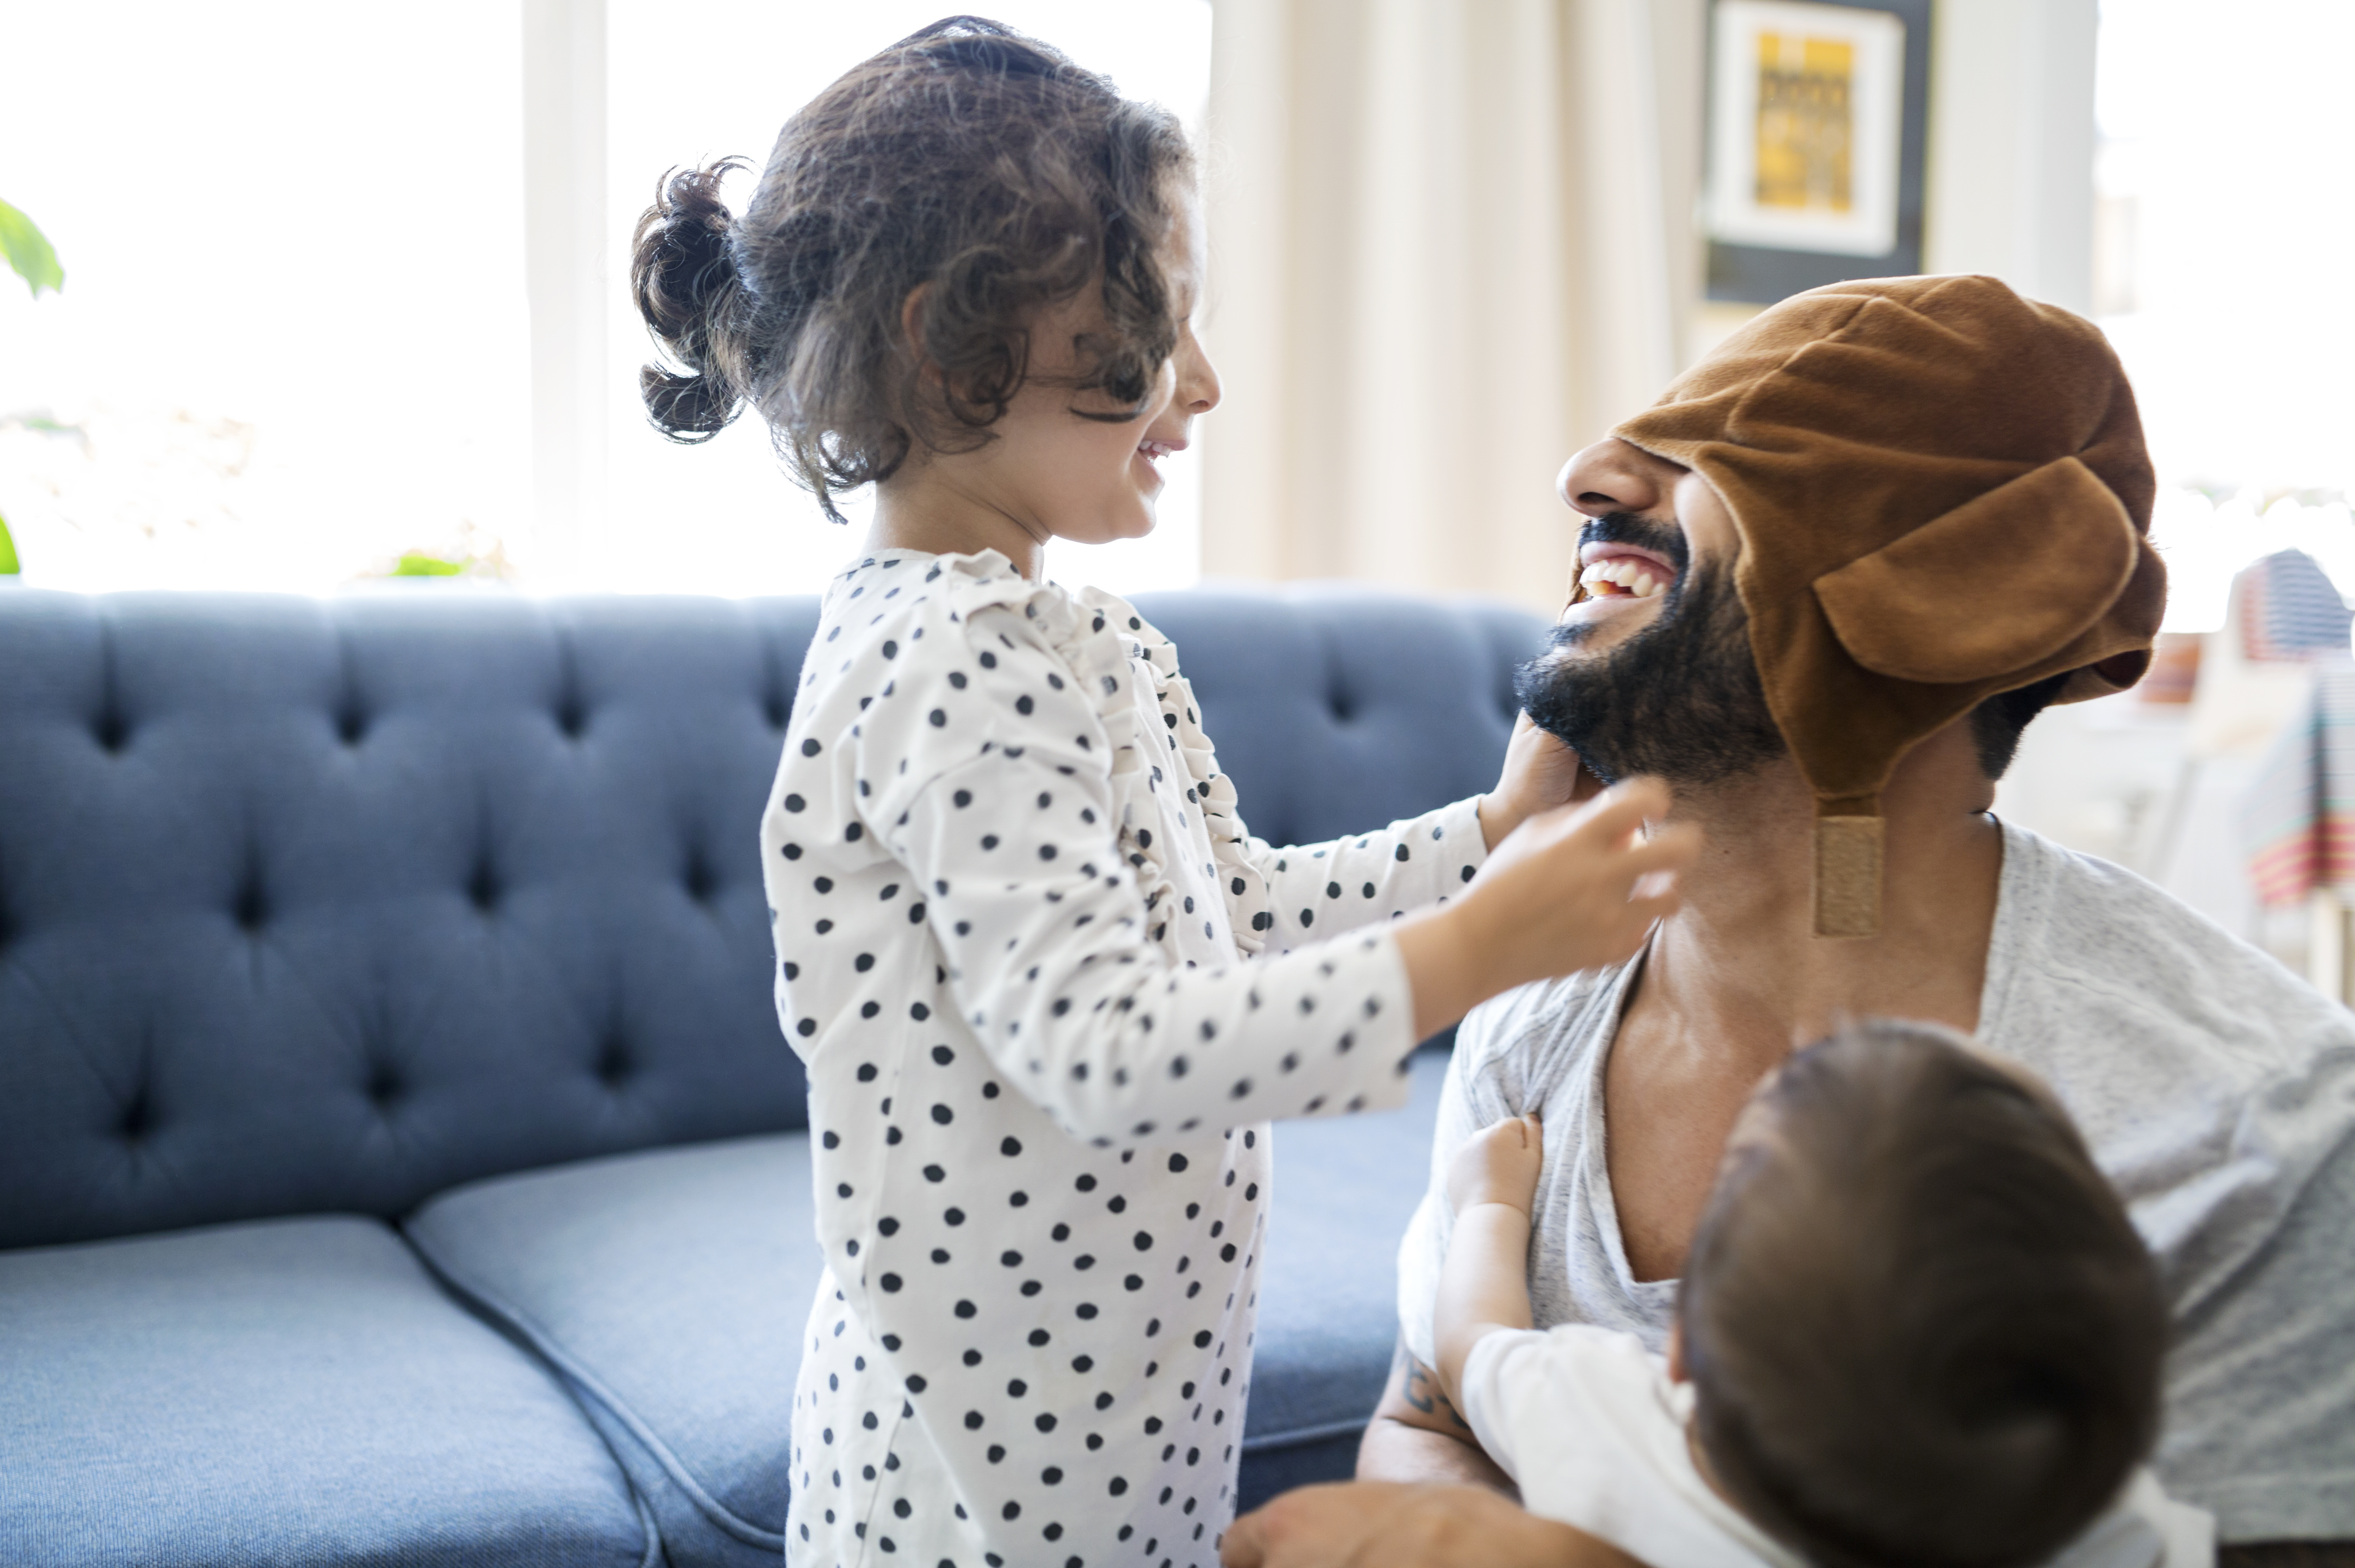 Kids See Bearded Men As Strong — But Unattractive, Study Finds